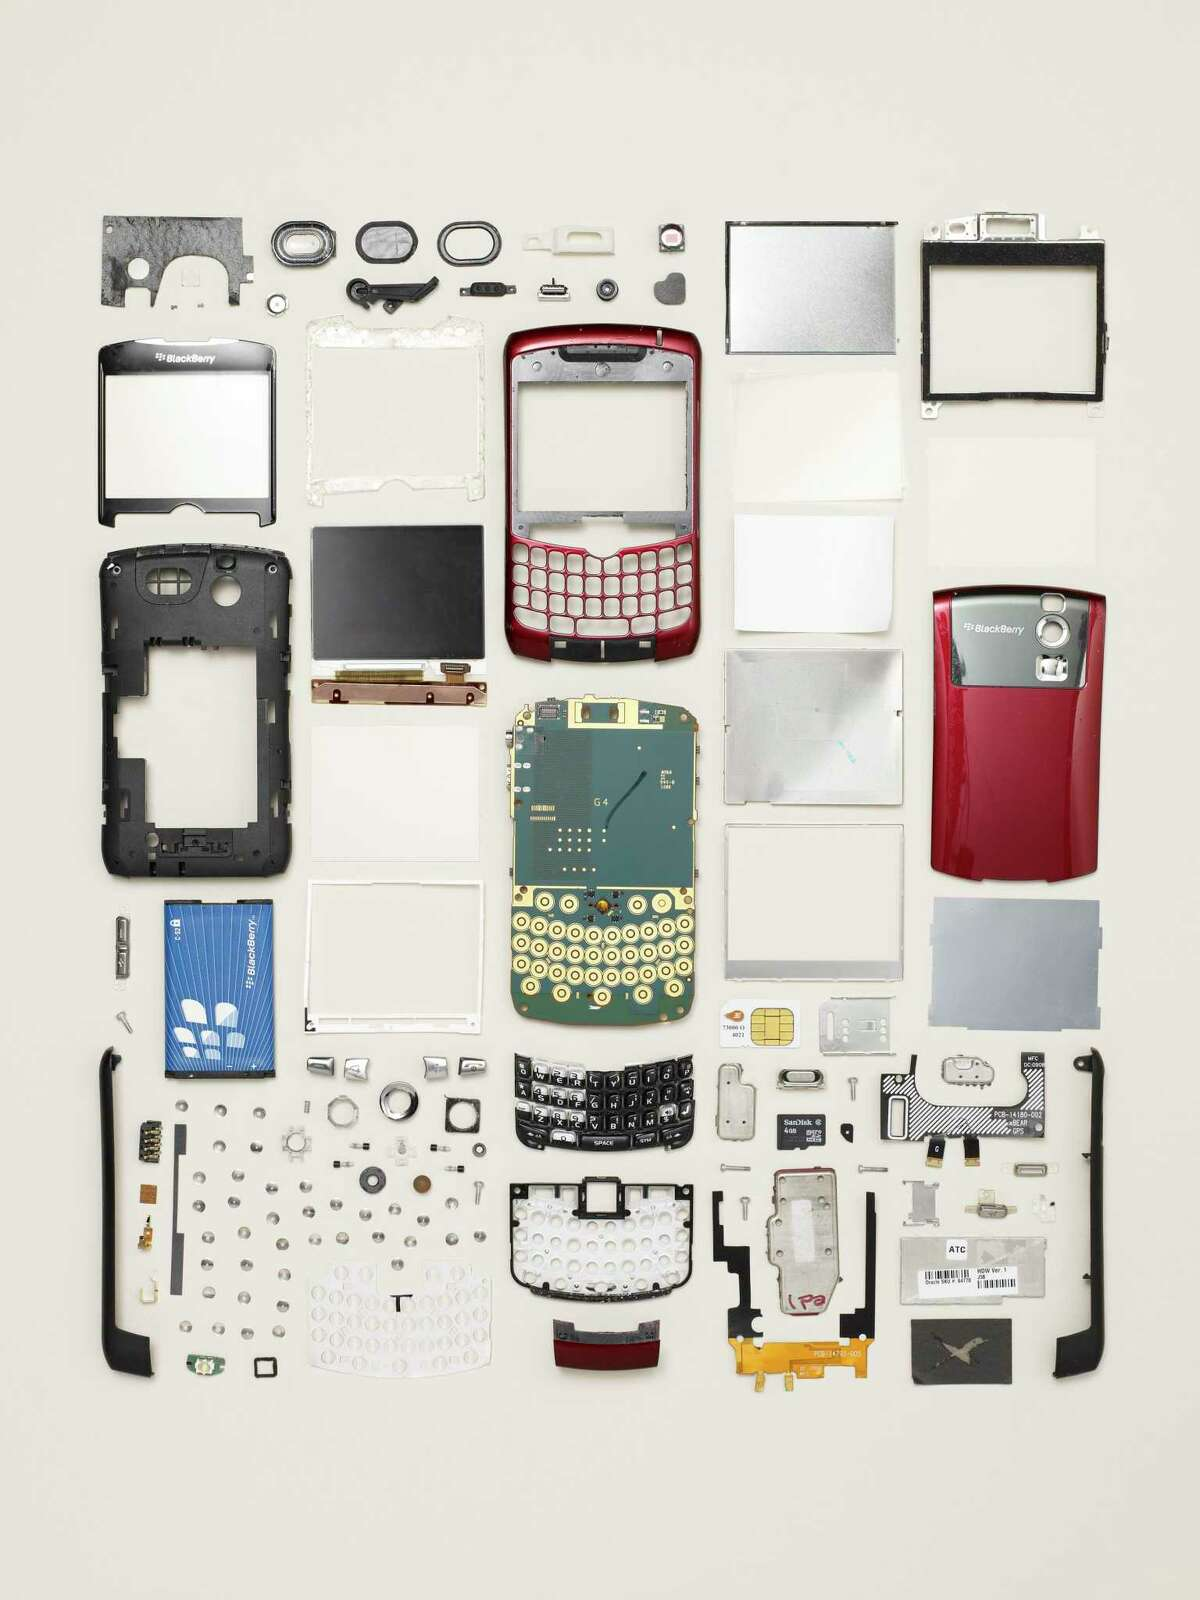 Todd McLellan photographs disassembled objects like a cell phone for his show